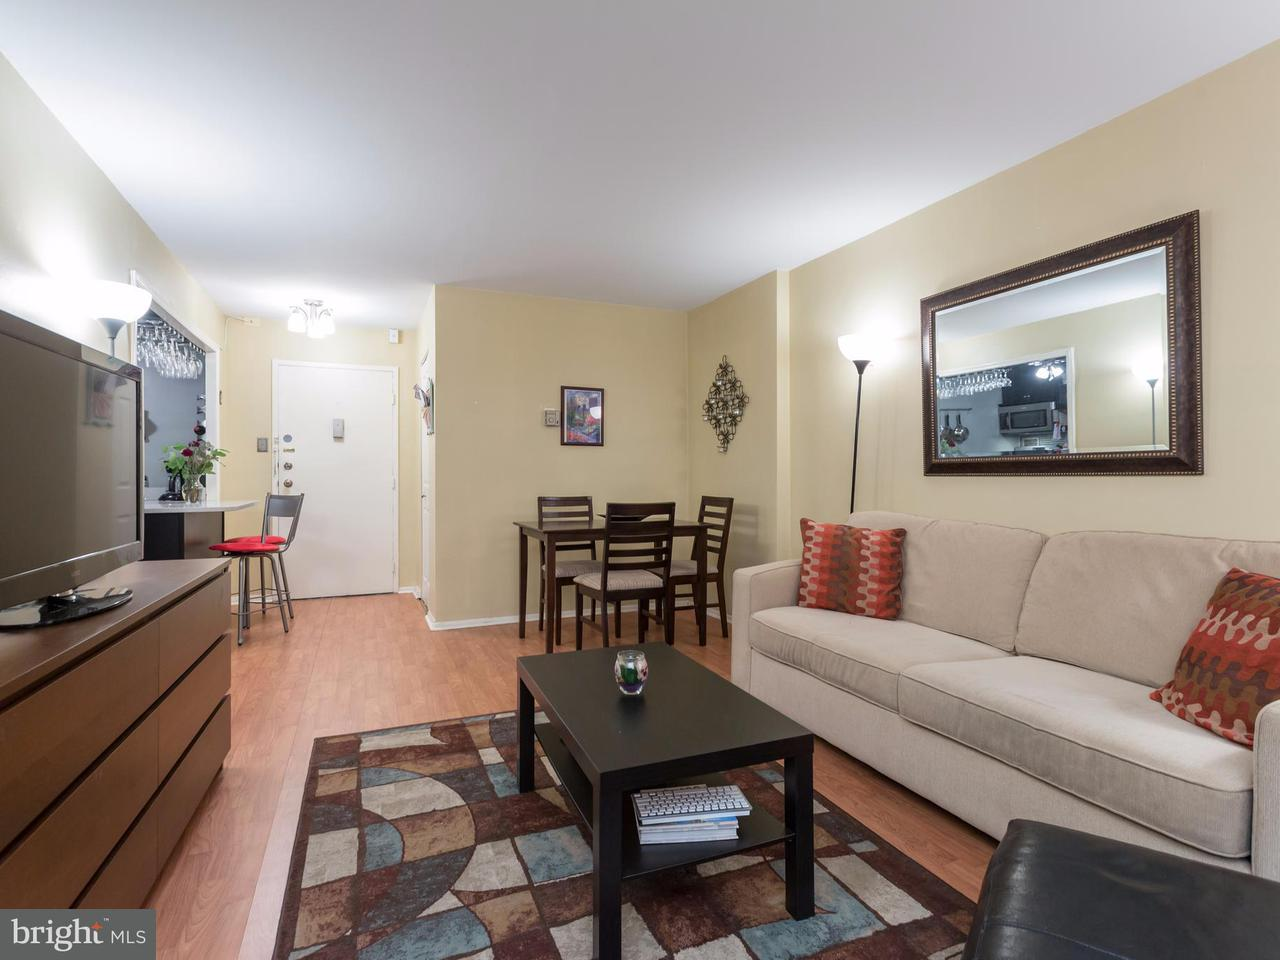 Condominium for Rent at 1420 N St NW #906 Washington, District Of Columbia 20005 United States